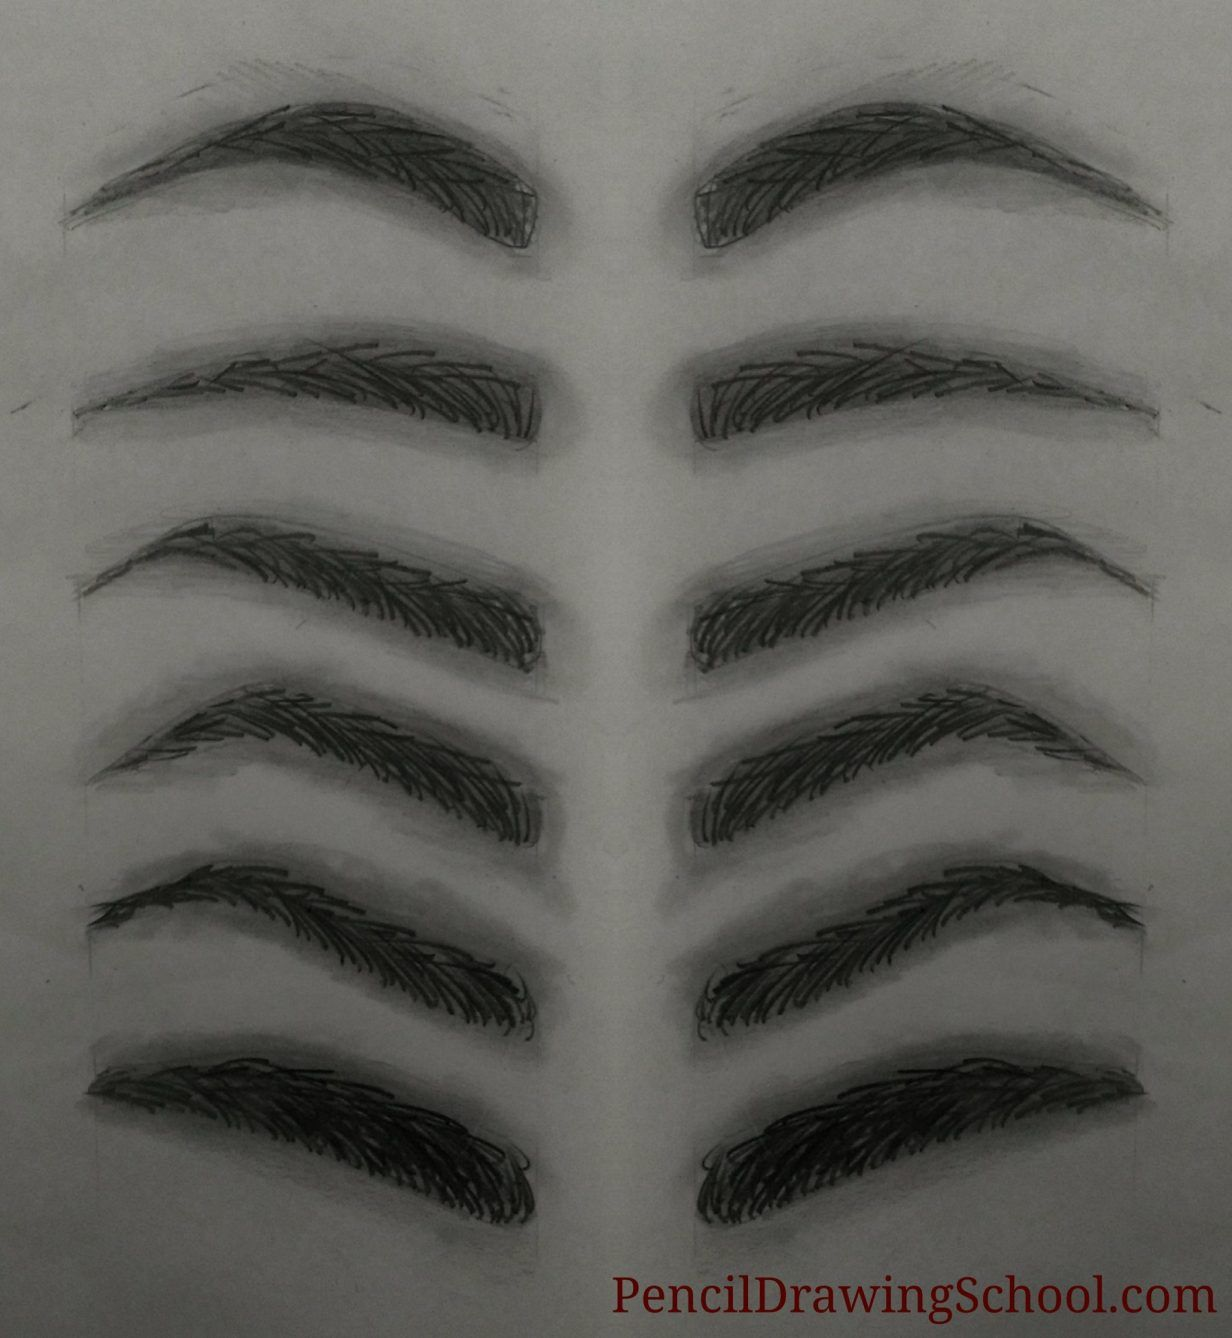 How to Draw an Eyebrow? The easy step by step guide in ...